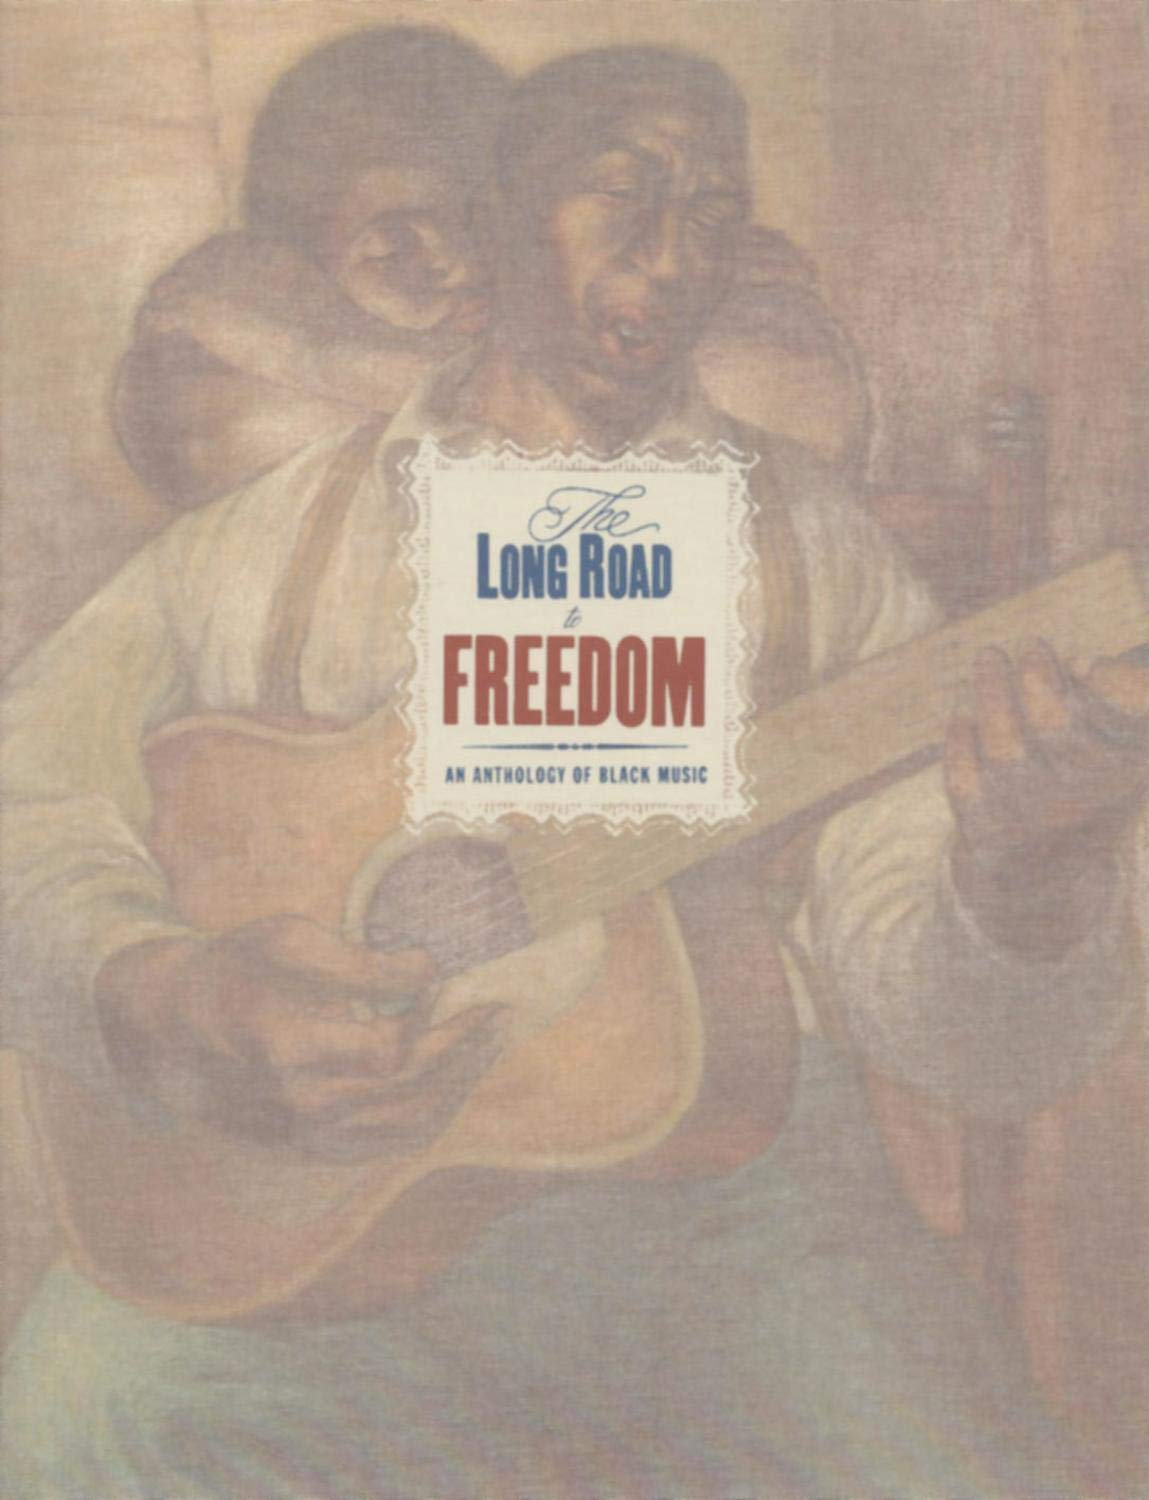 The Long Road to Freedom: An Anthology of Black Music by Sony Legacy